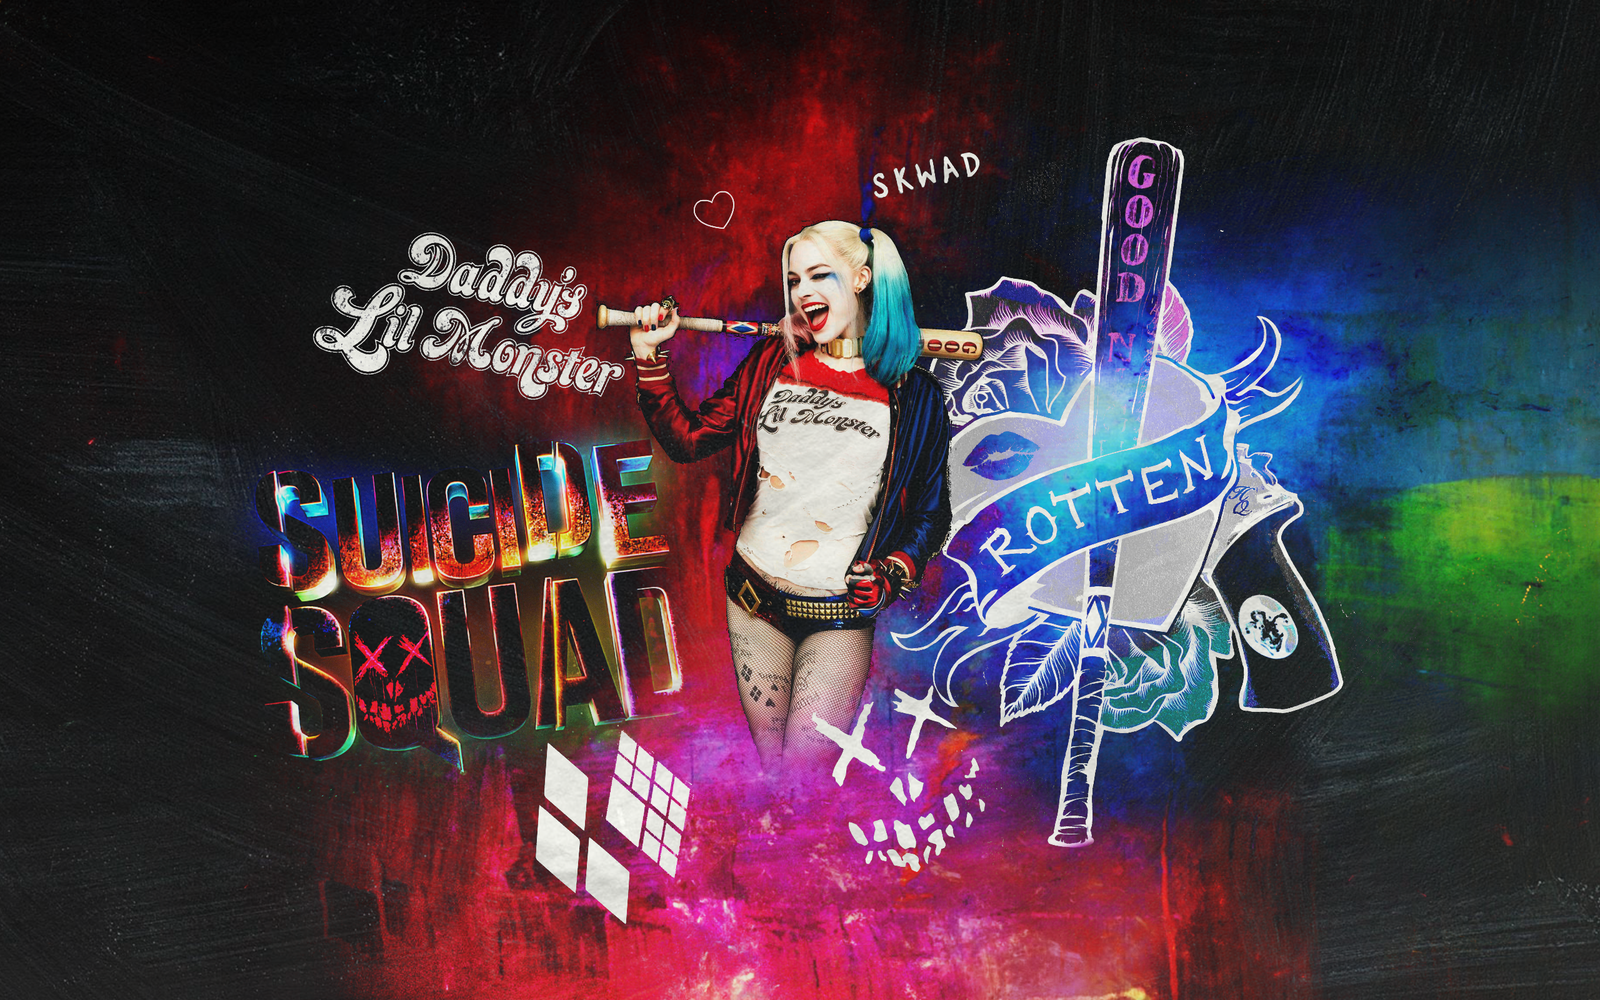 Harley Quinn Wallpaper Suicide Squad: Harley Quinn Suicide Squad Wallpaper By Panchecco On